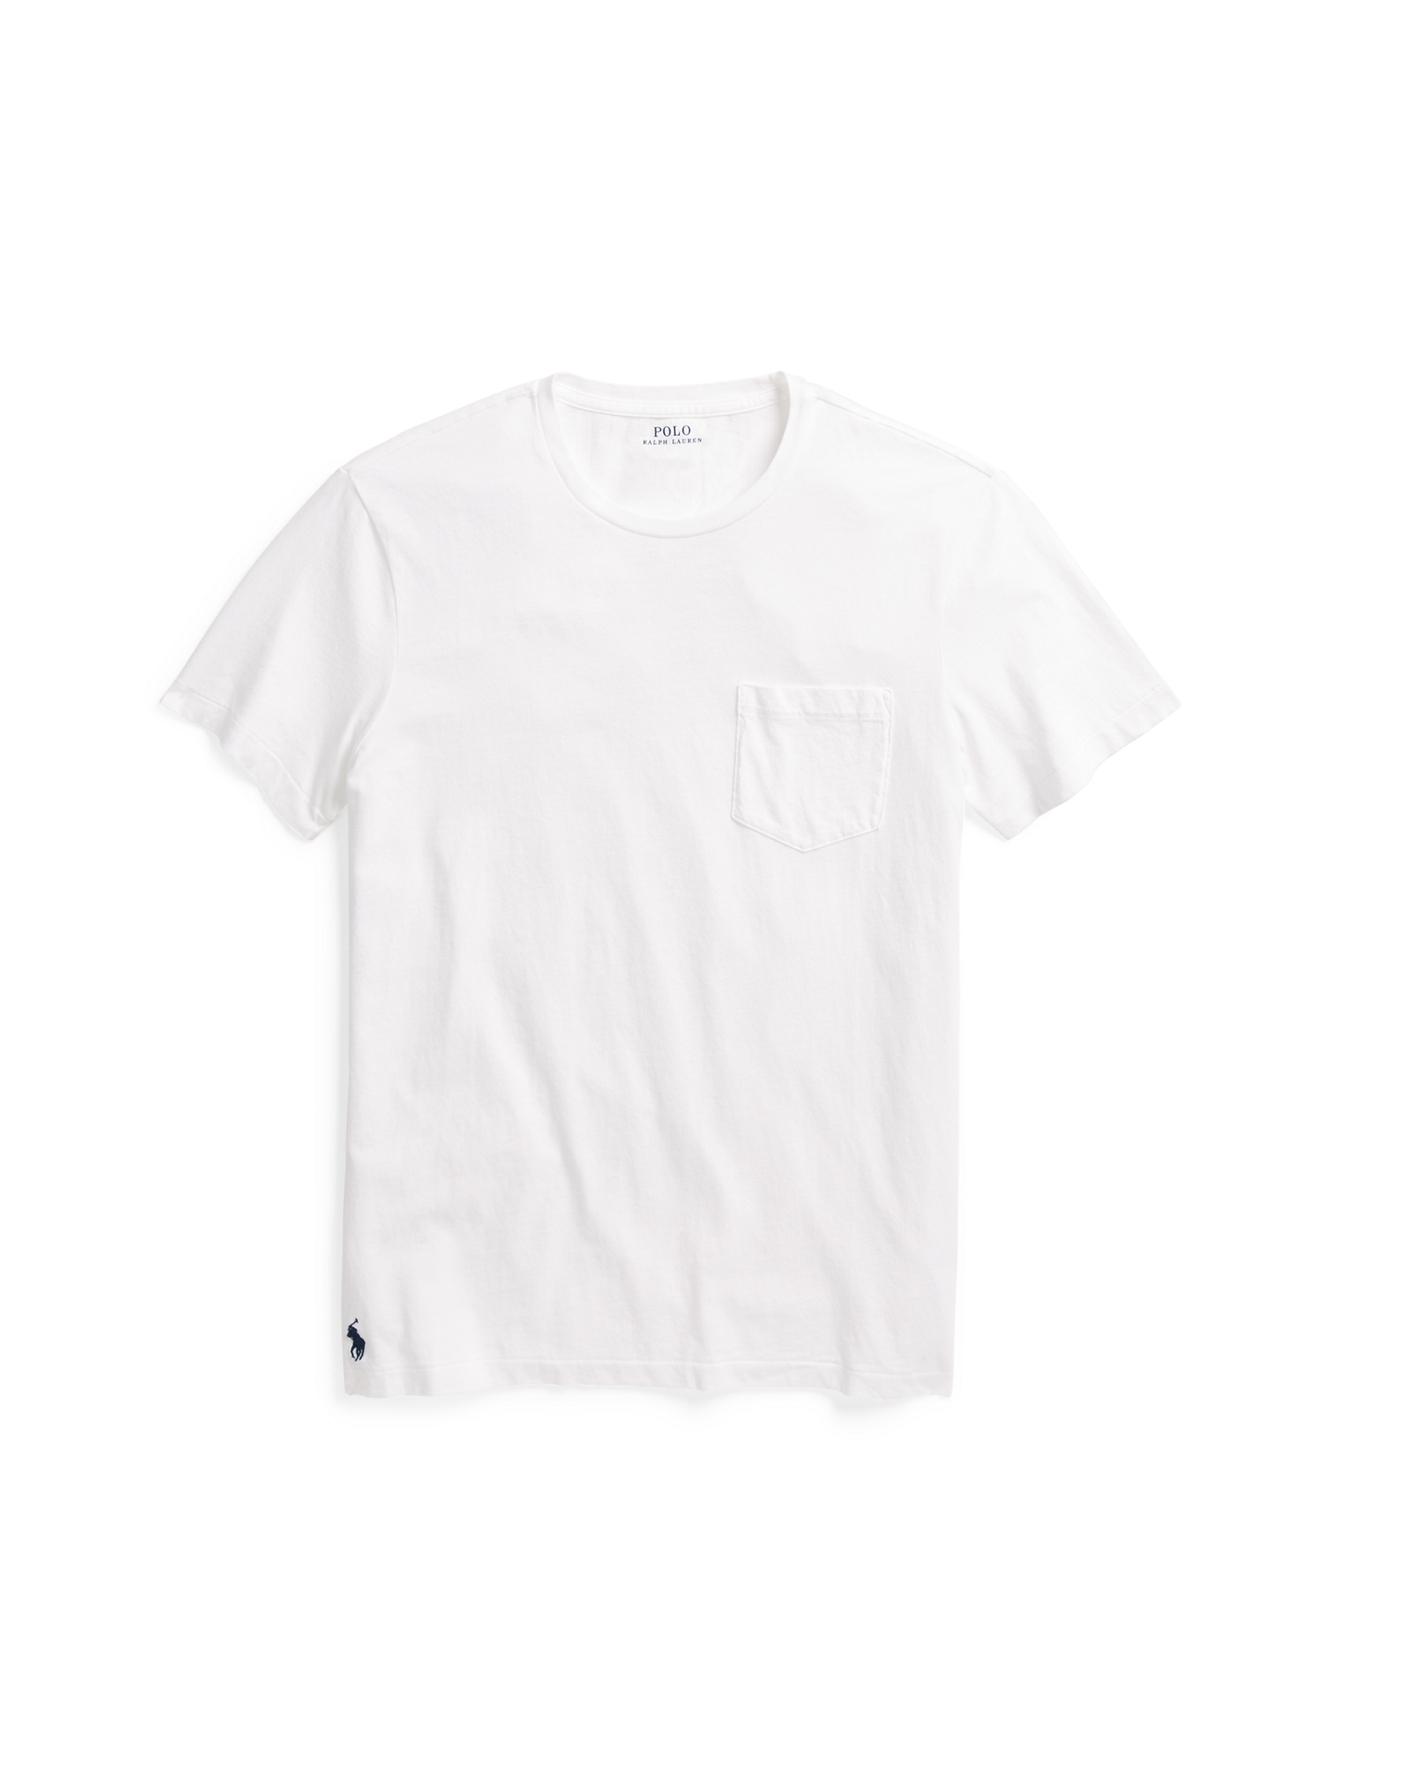 T shirt white black - Mouse Over To Zoom